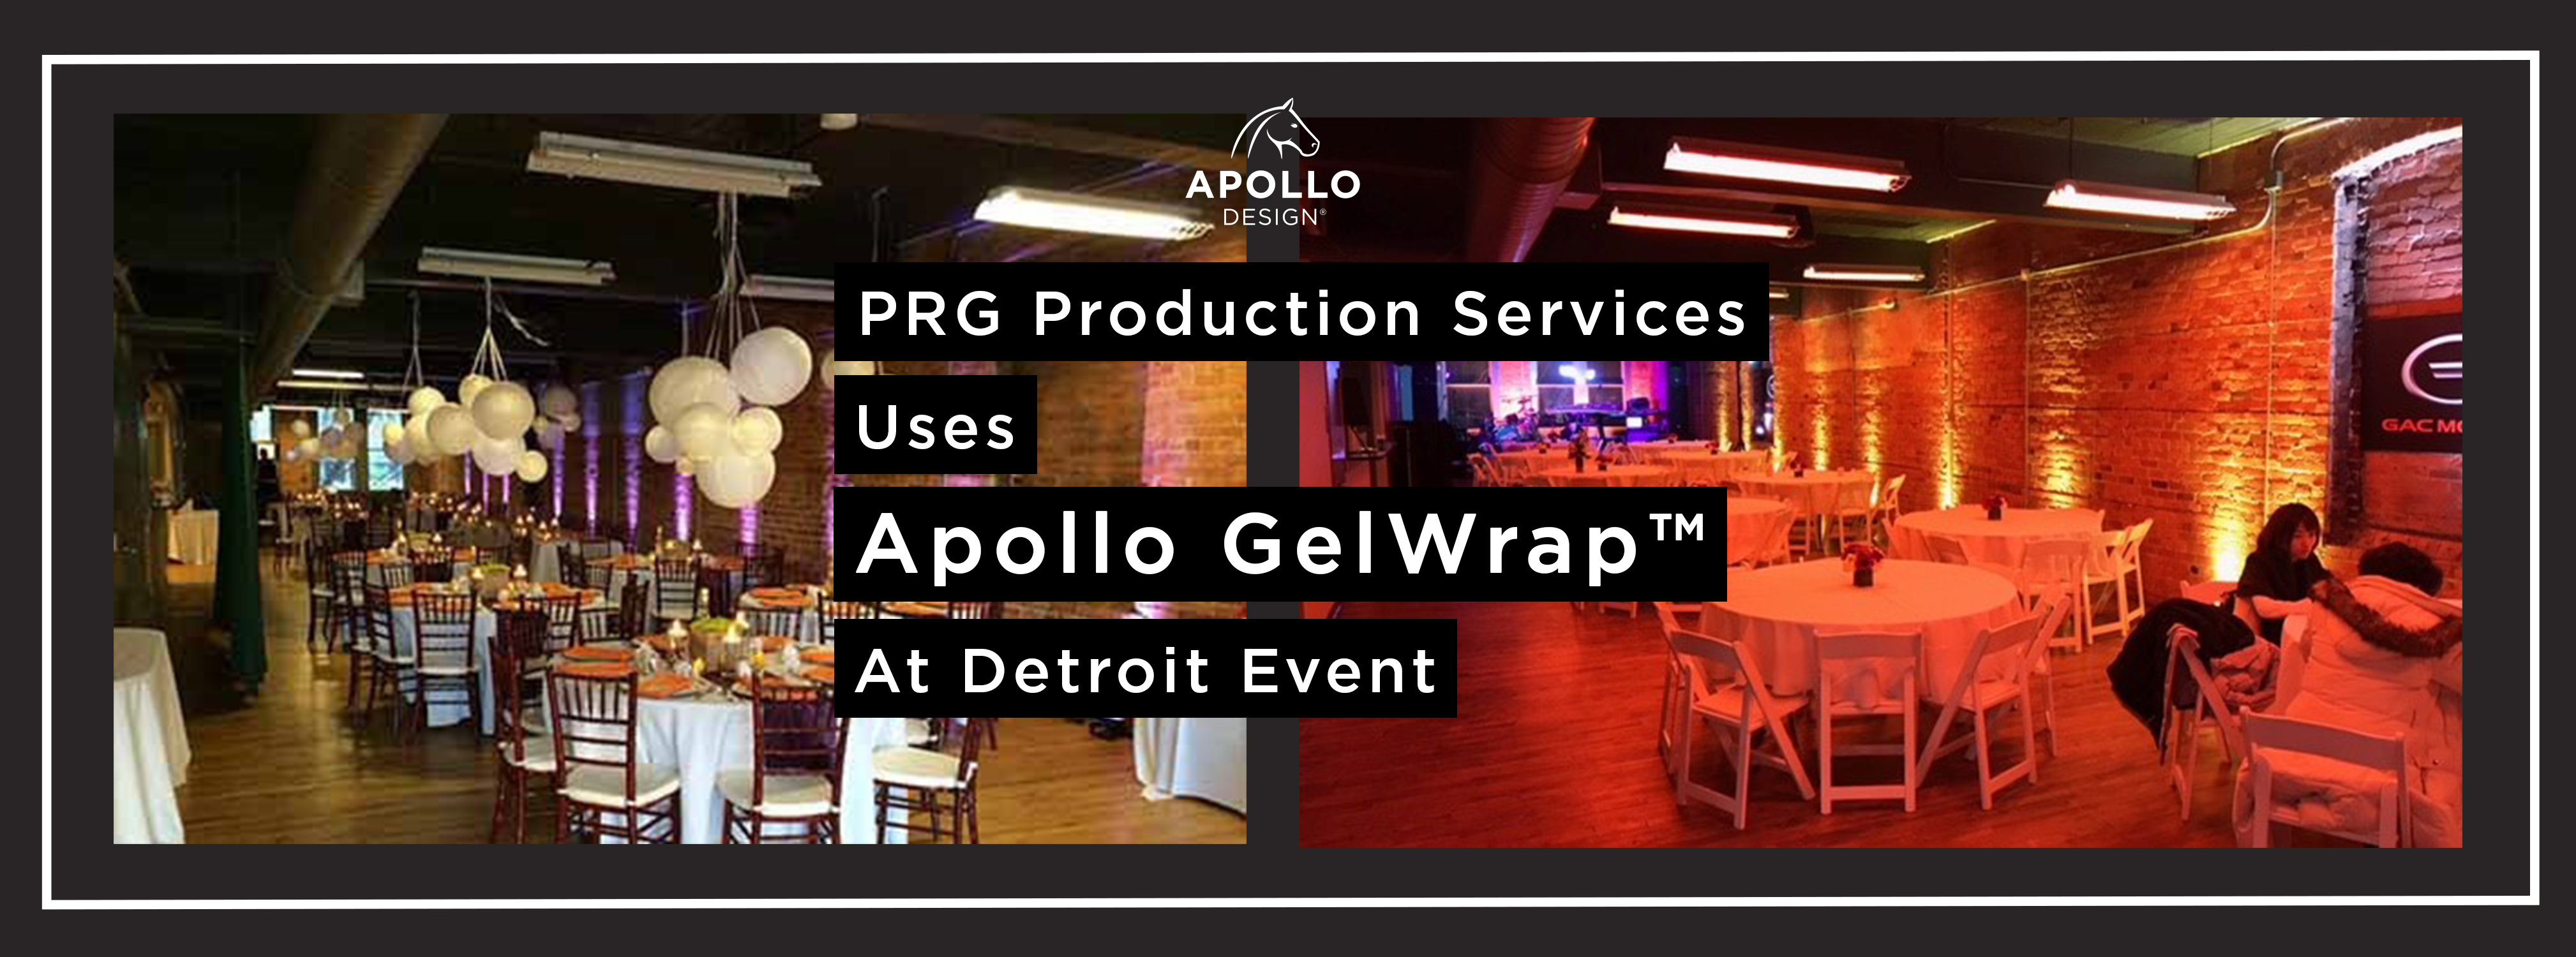 PRG Production Services Uses Apollo GelWrap™ at Detroit Event